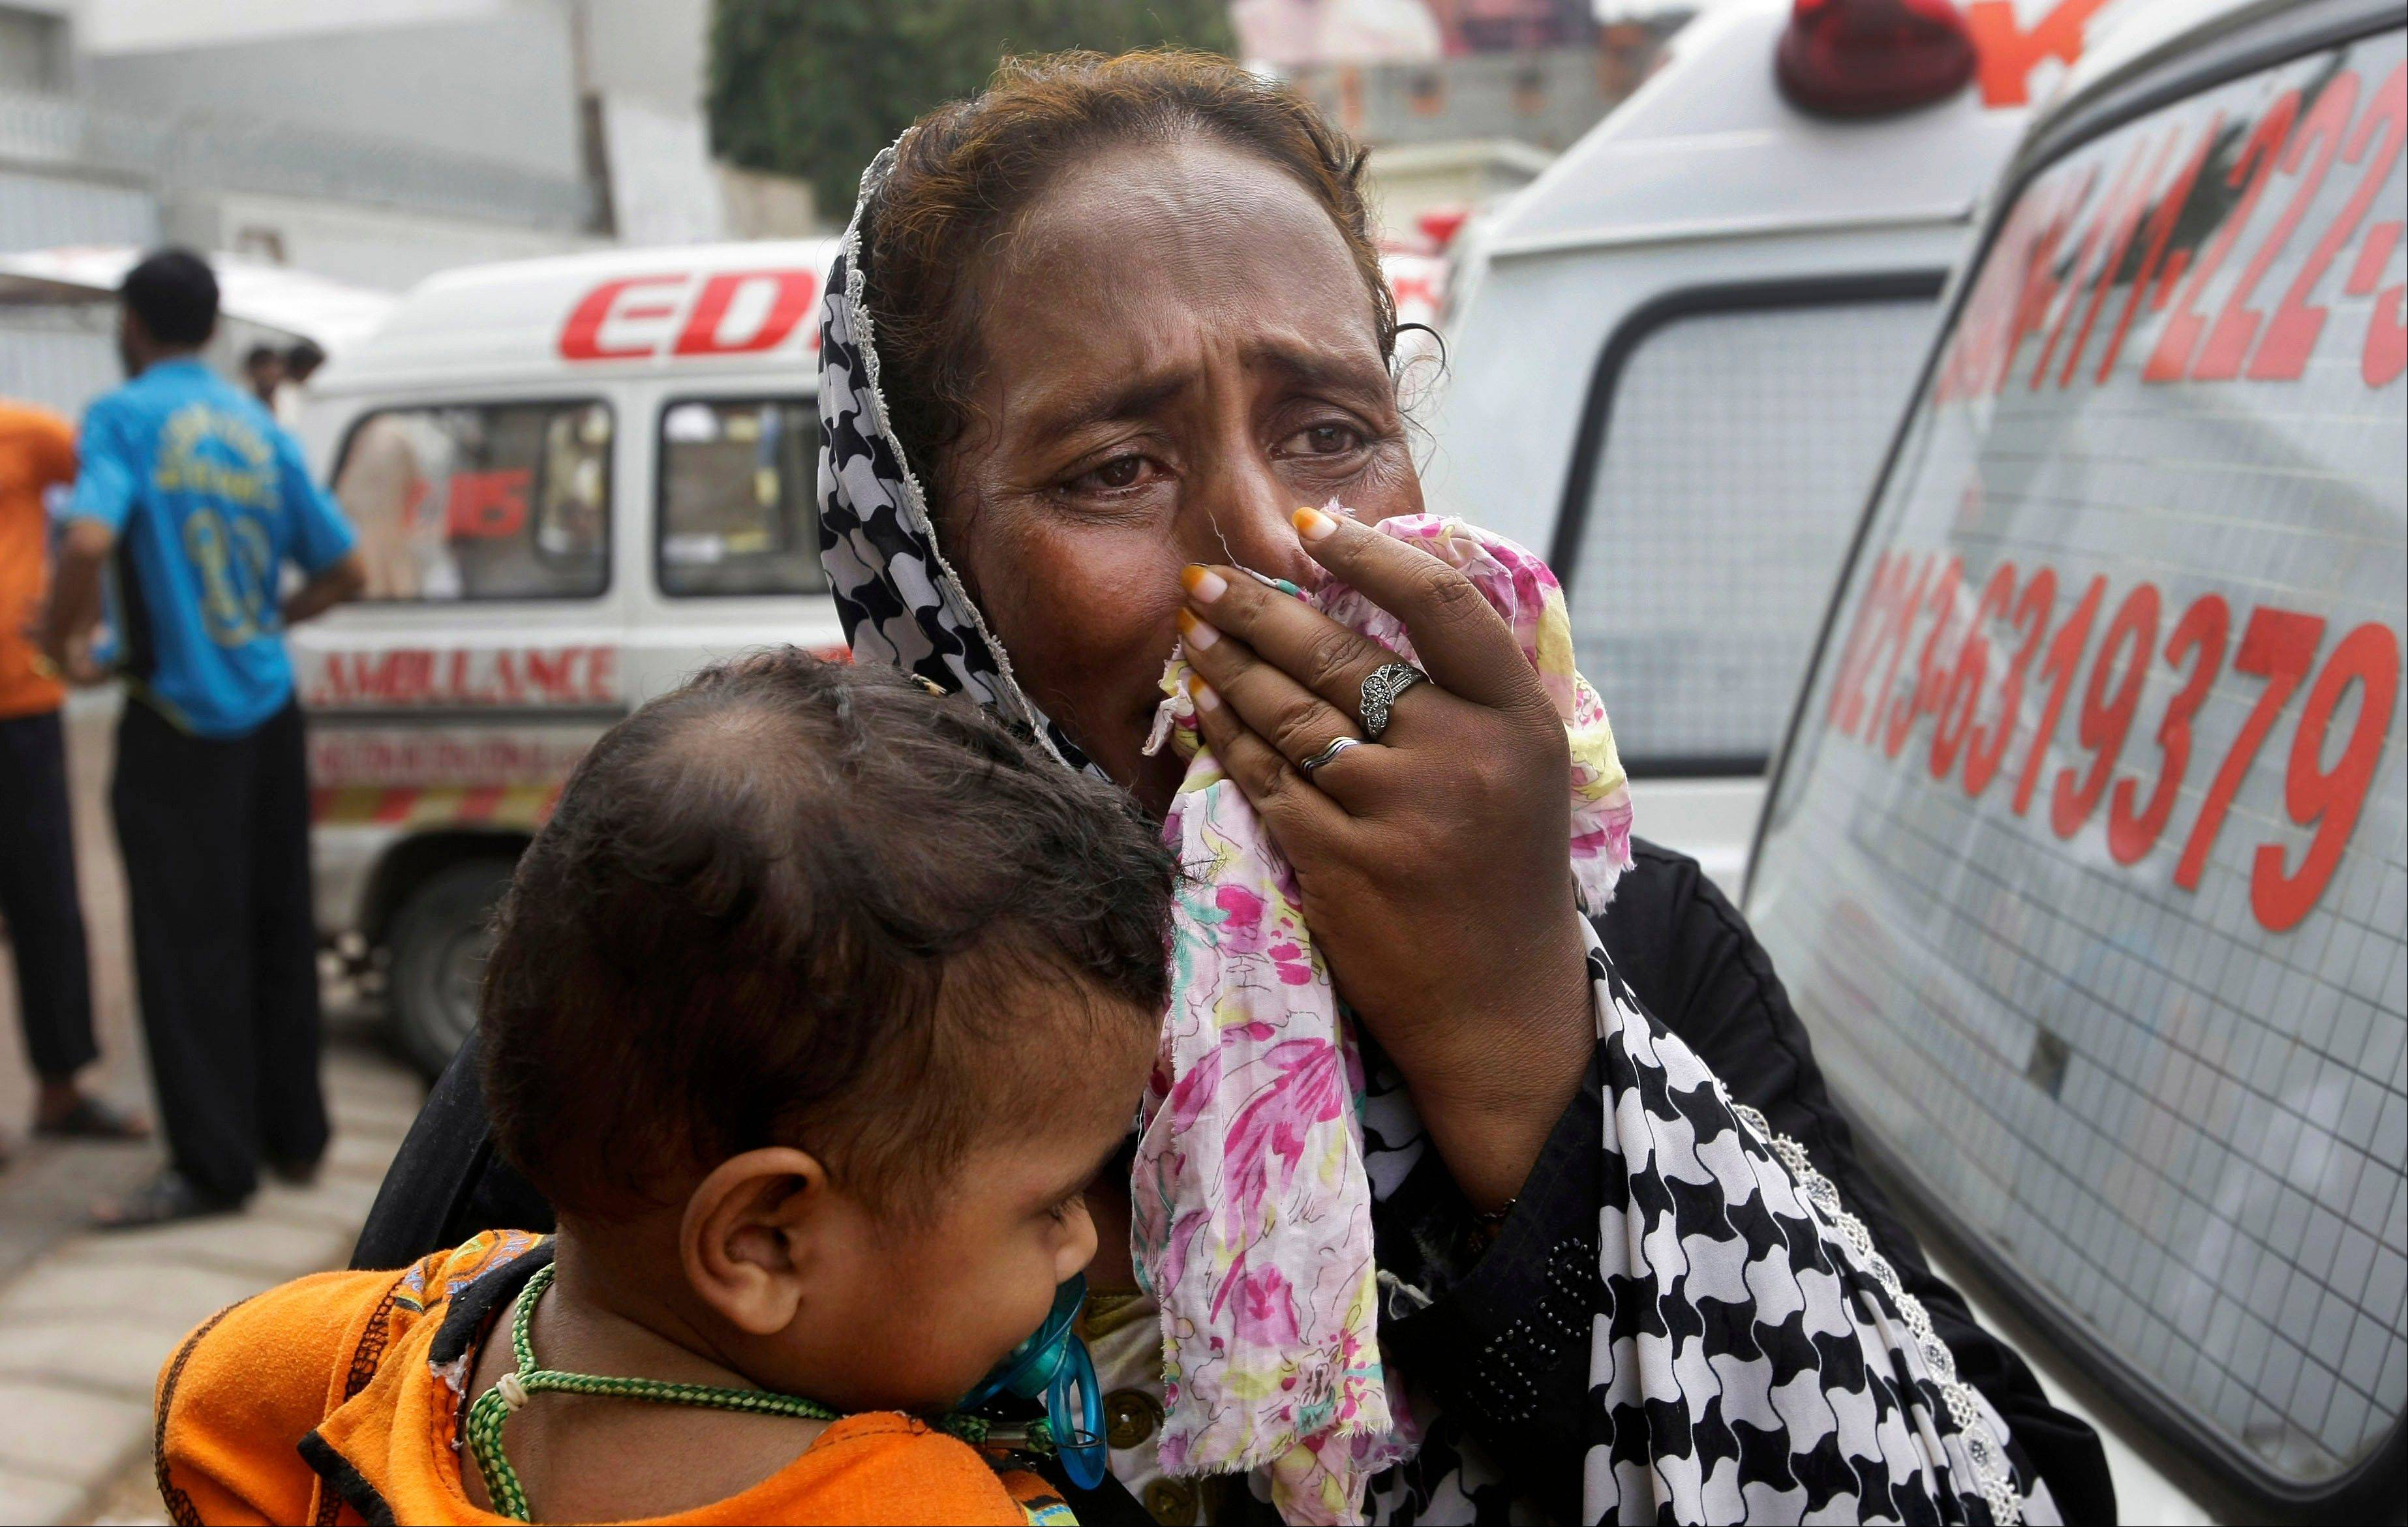 A Pakistani woman mourns the death of her family member outside a mortuary in Karachi, Pakistan, Wednesday, Sept. 12, 2012.